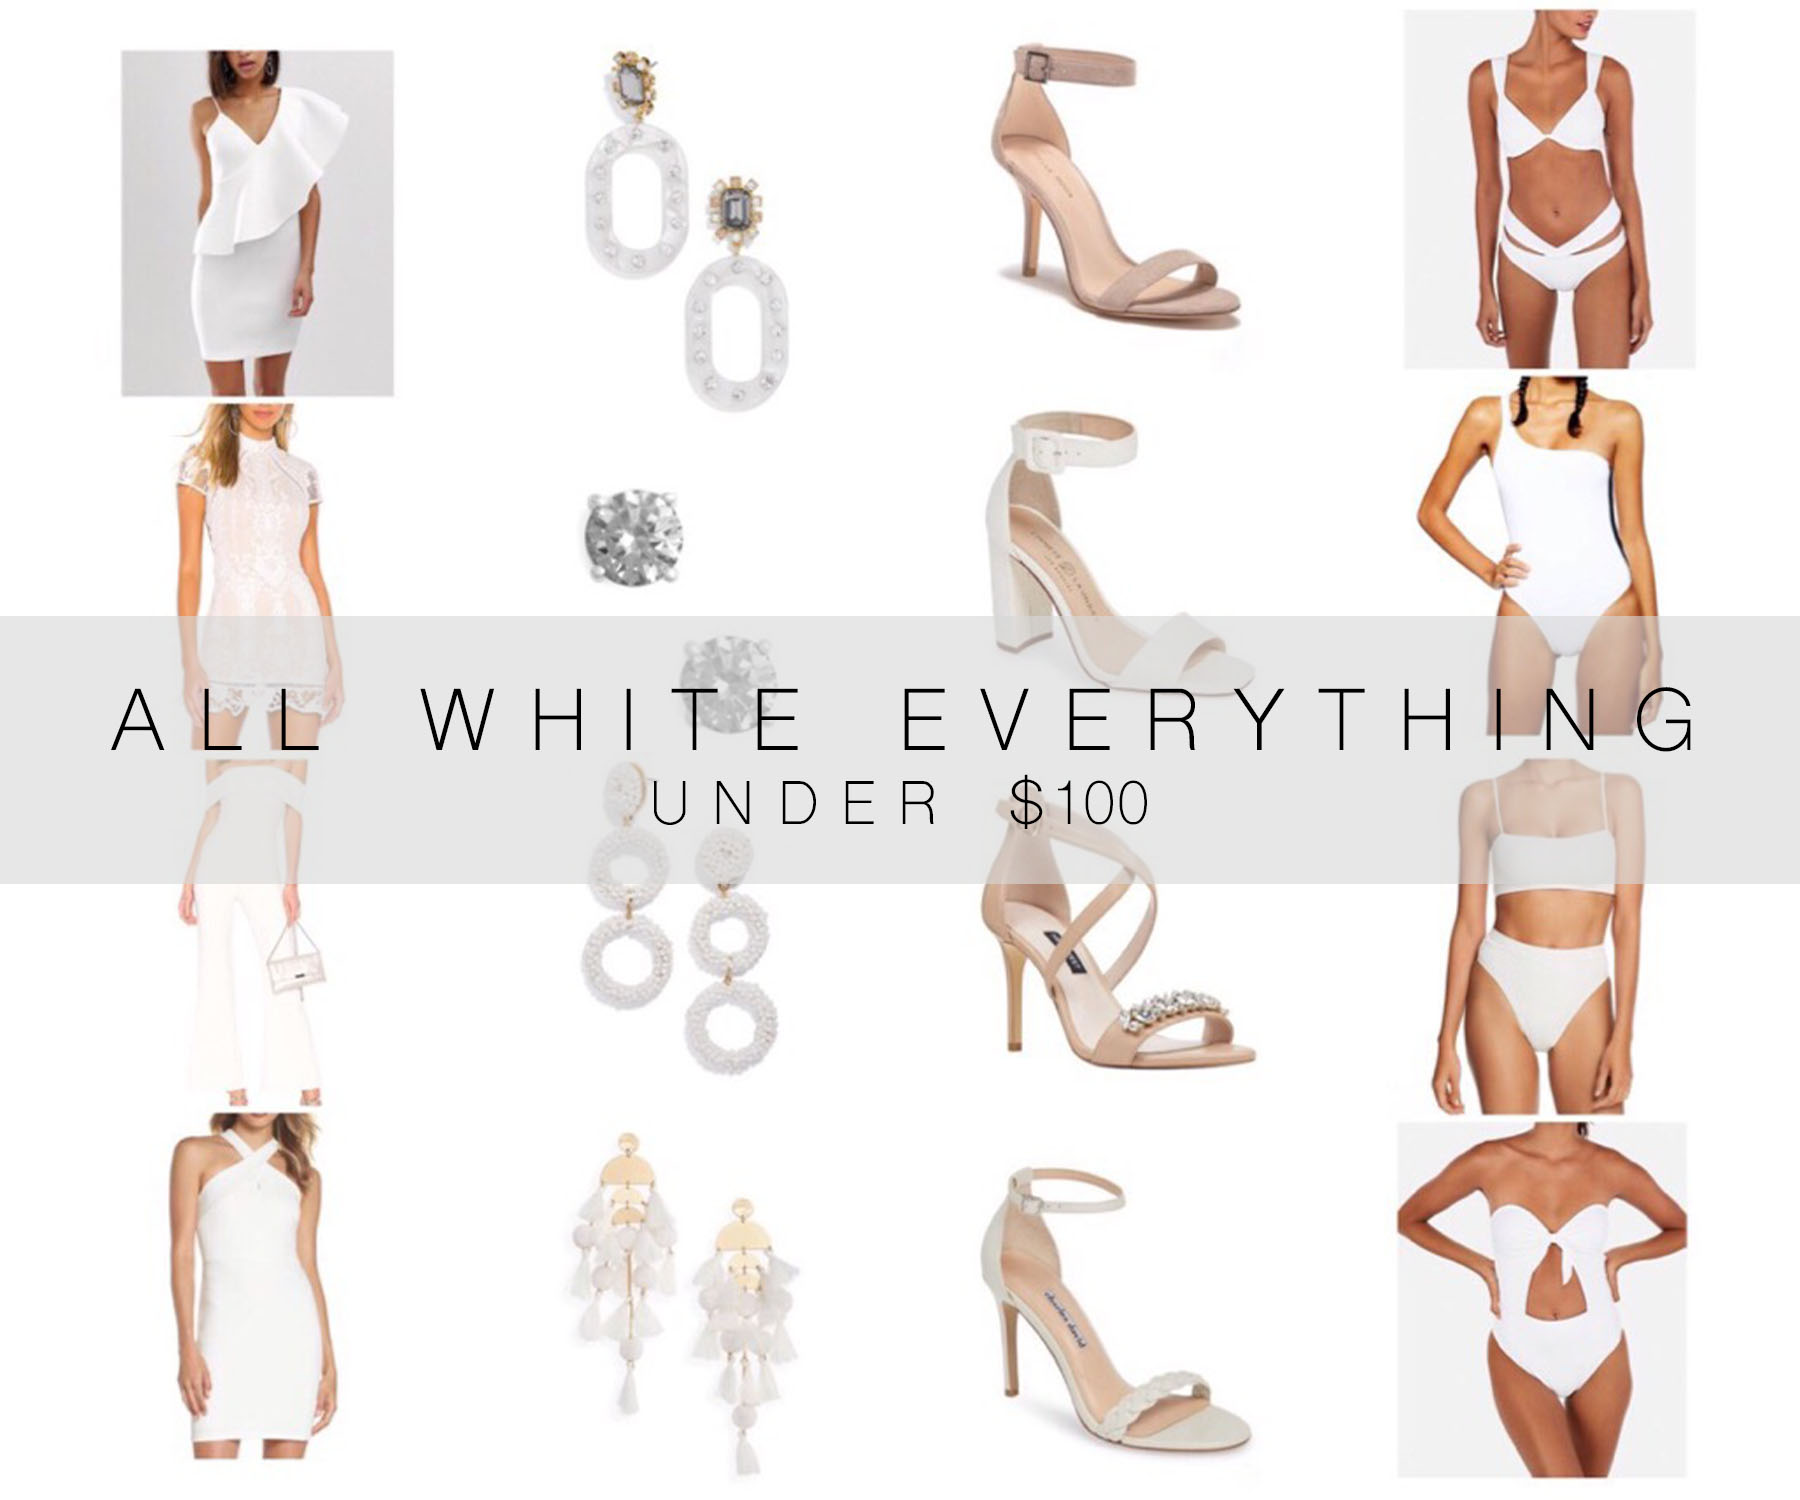 all-white-everything.jpg